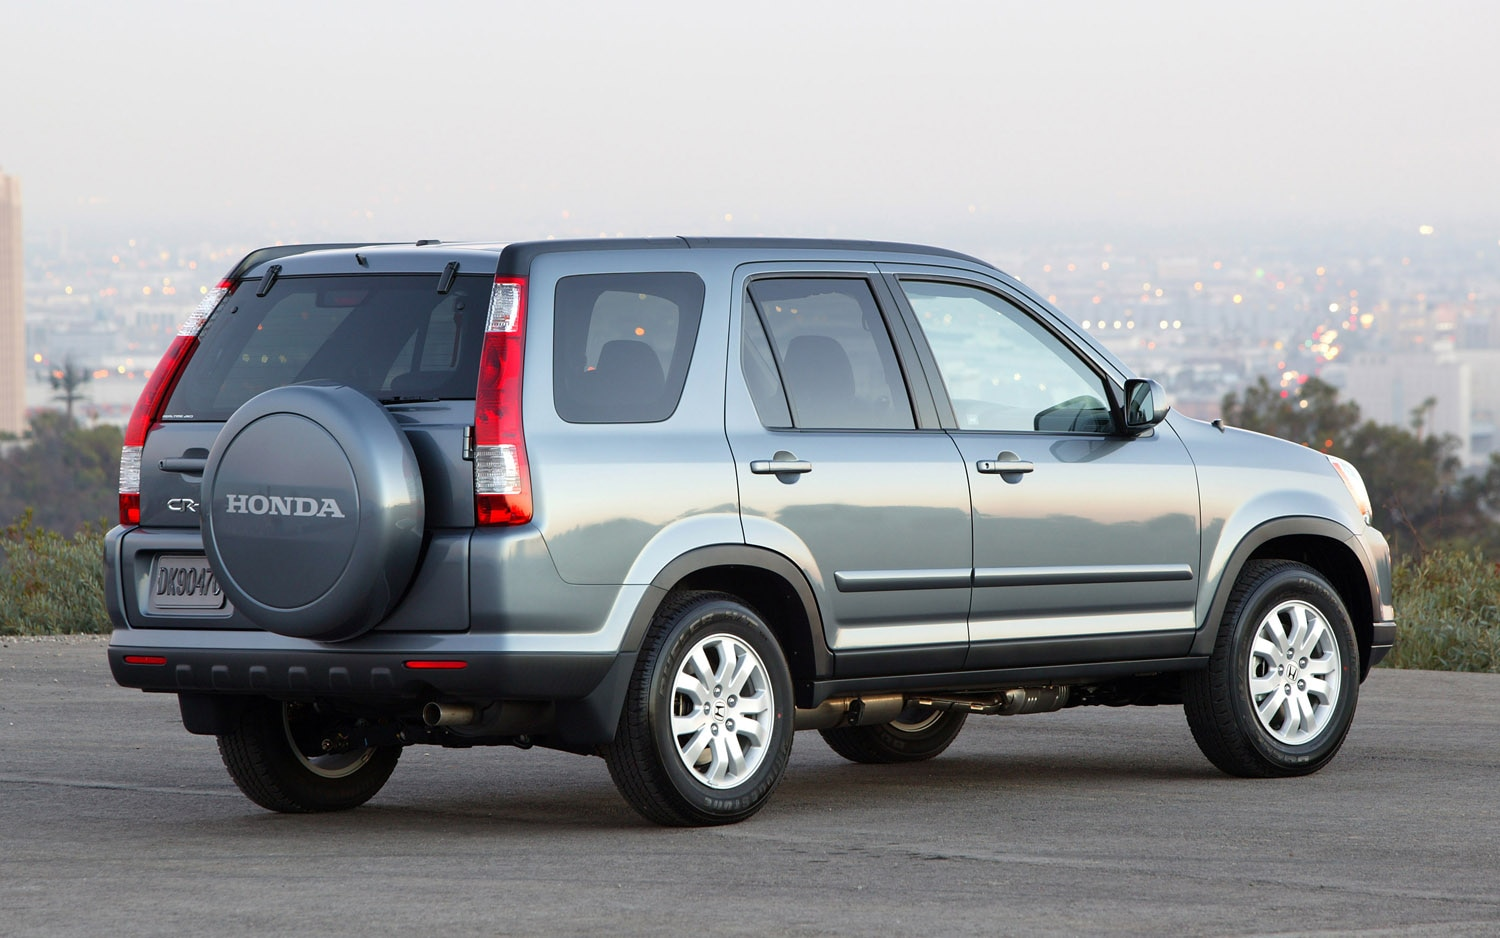 Honda Crv For Sale Near Me >> Honda, Nissan, and Mazda Recall Cars for Airbag Defect ...